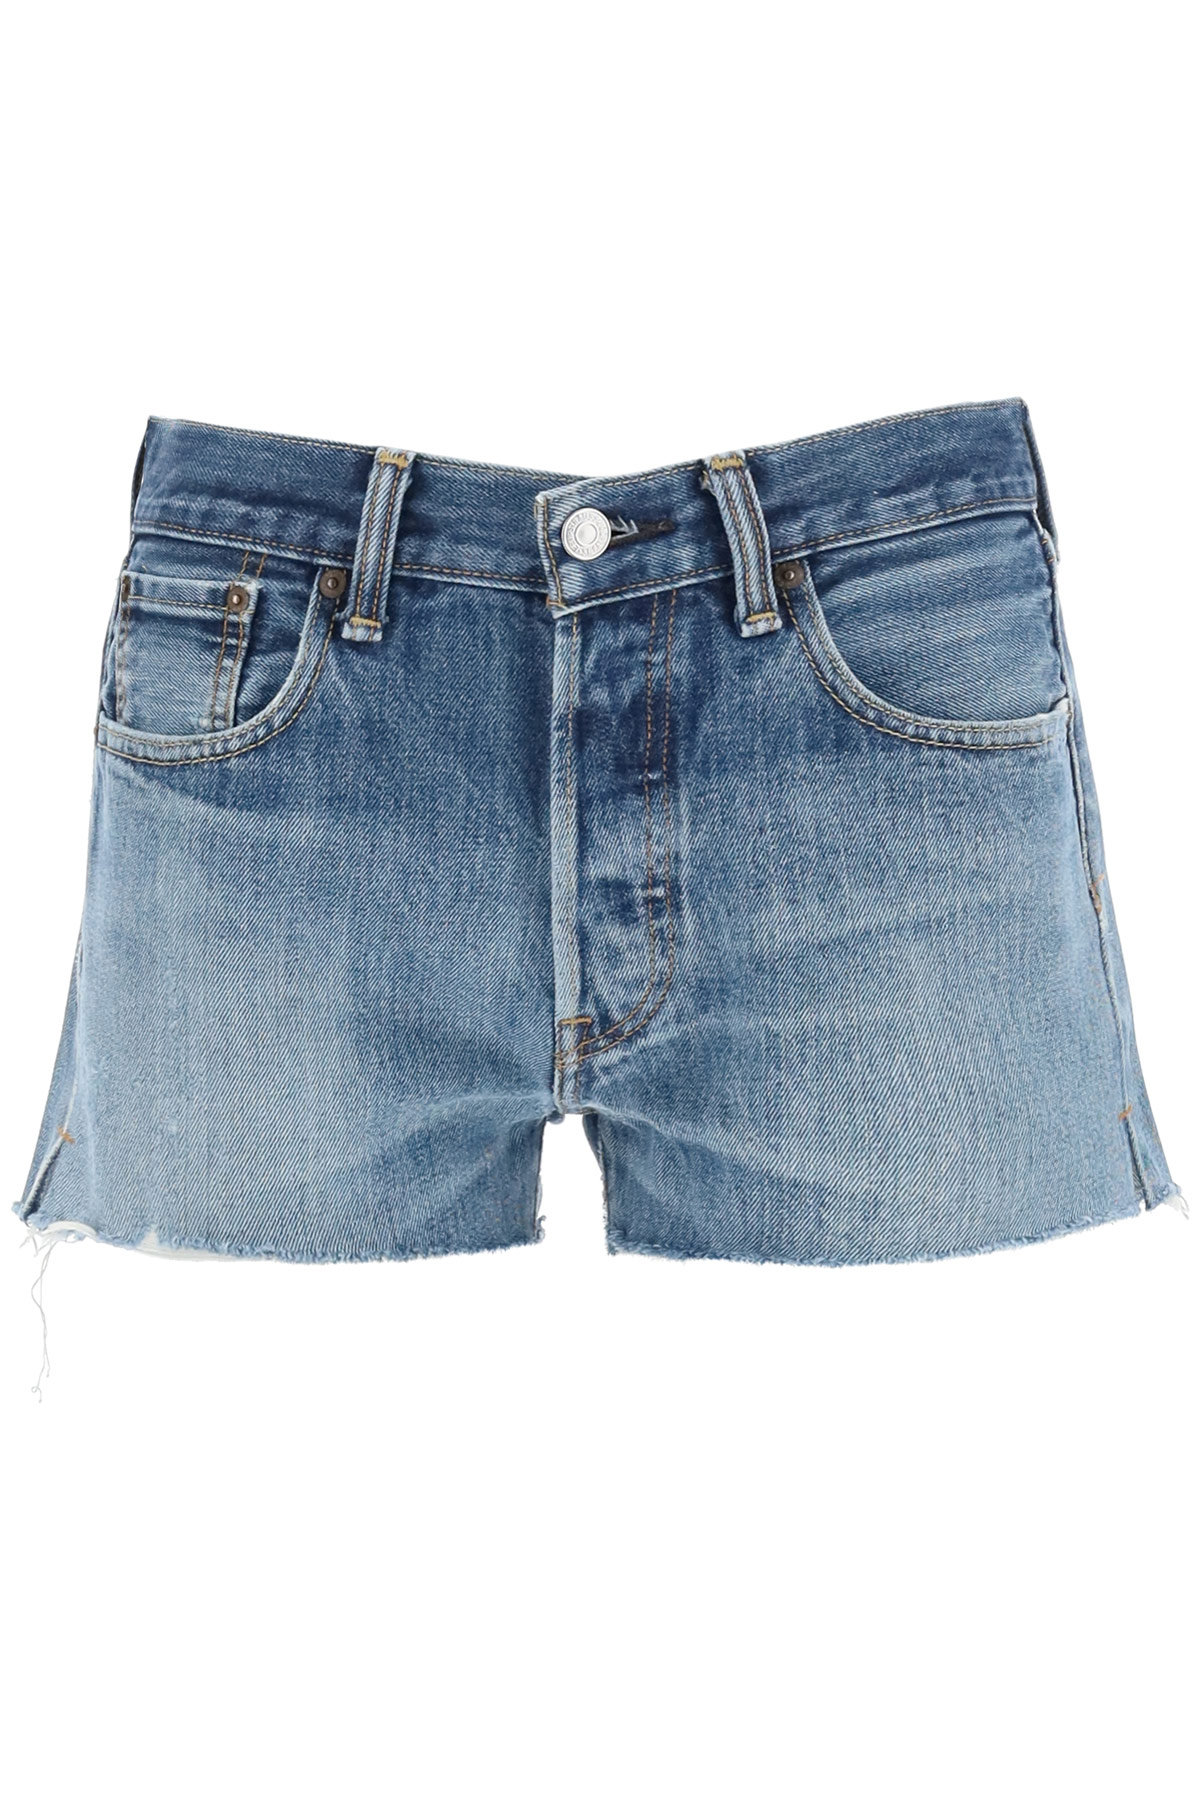 RE/DONE LEVI'S DENIM SHORTS 27 Blue Cotton, Denim